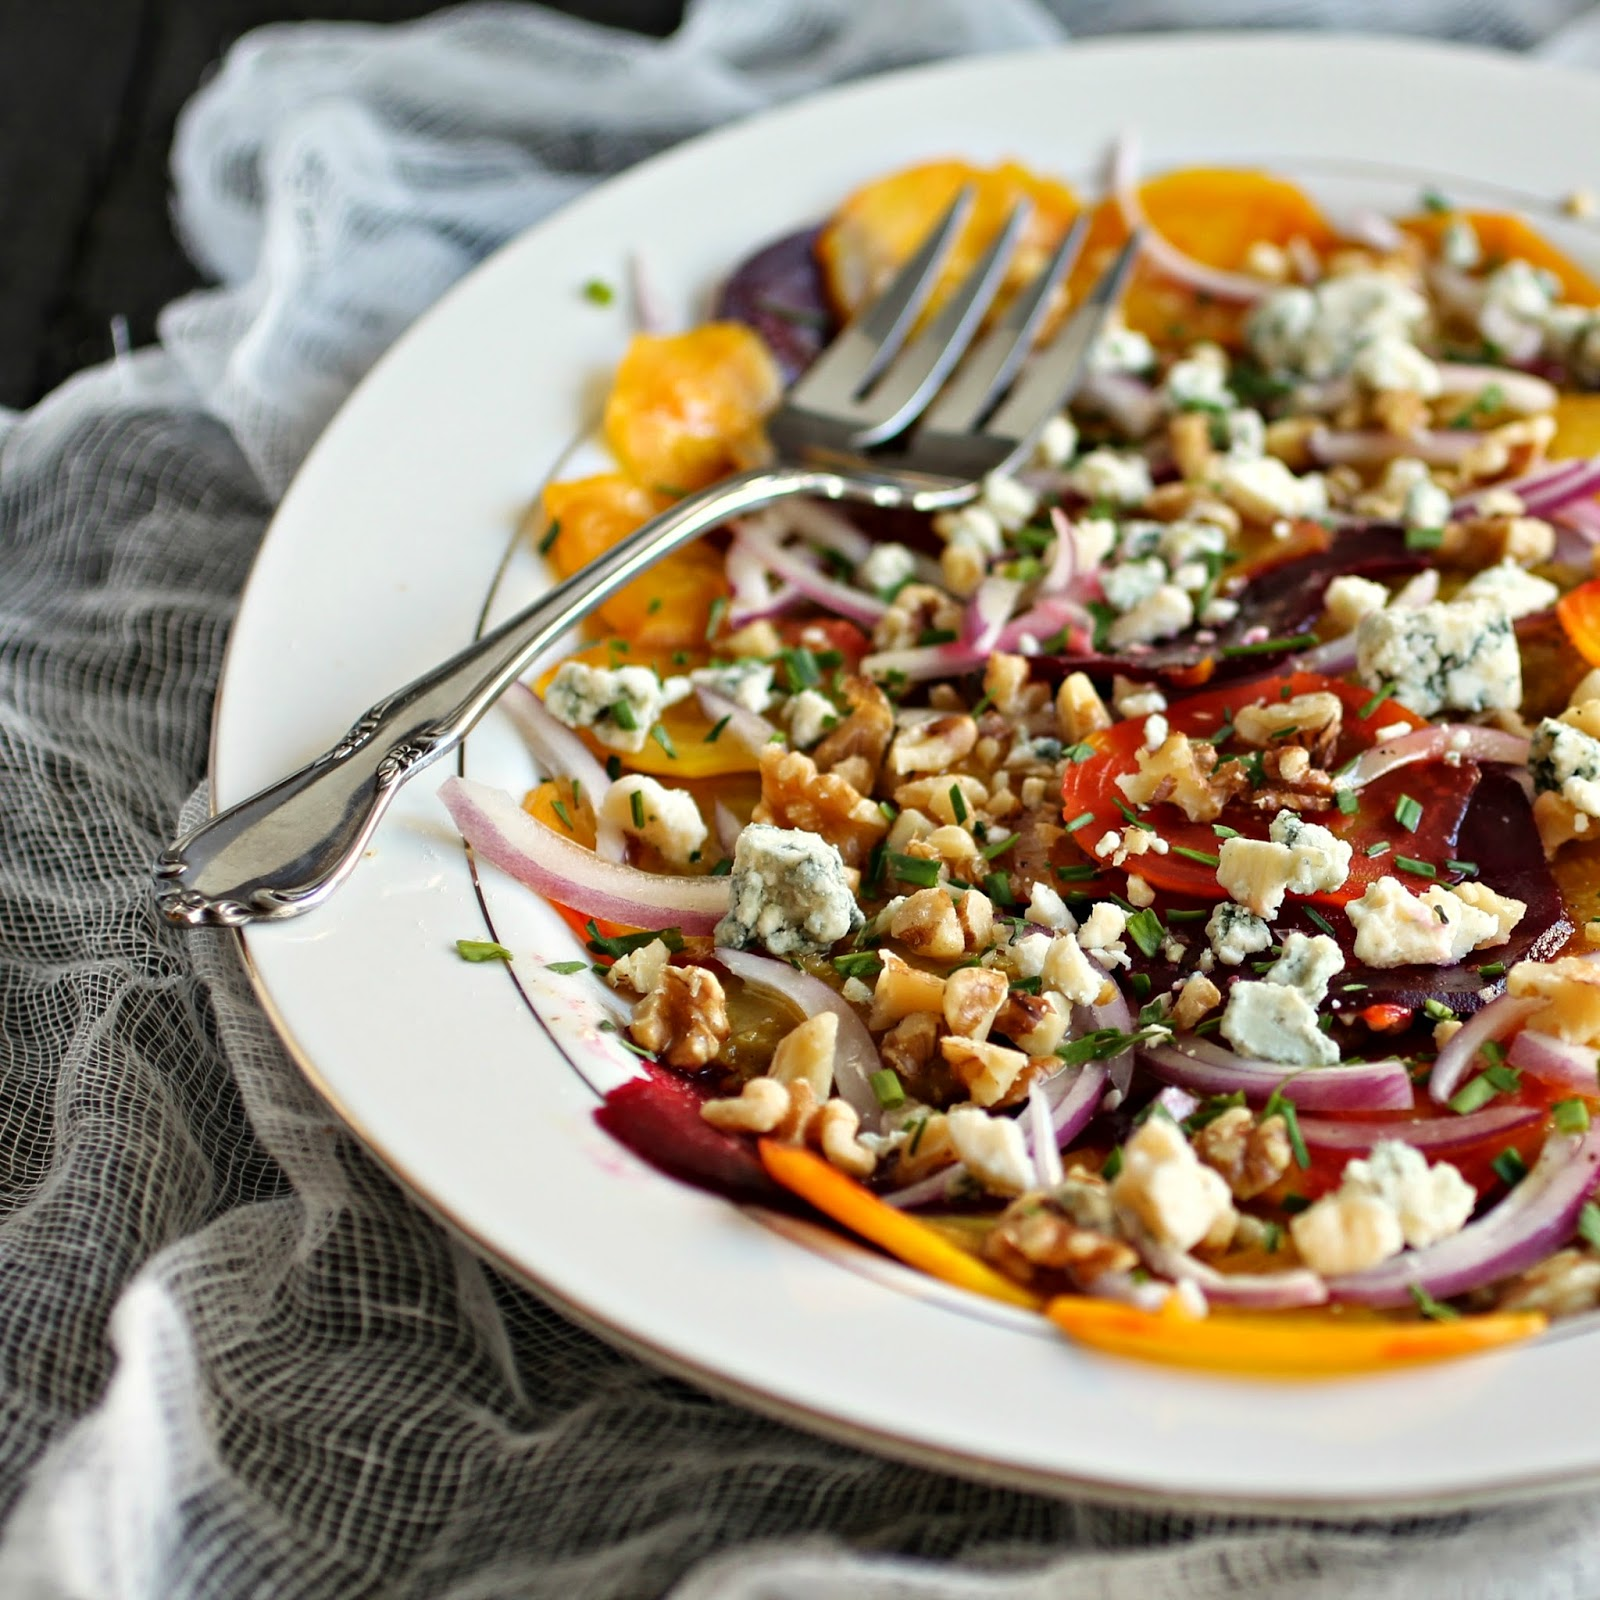 Beautiful Beet Salad with Walnuts and Gorgonzola